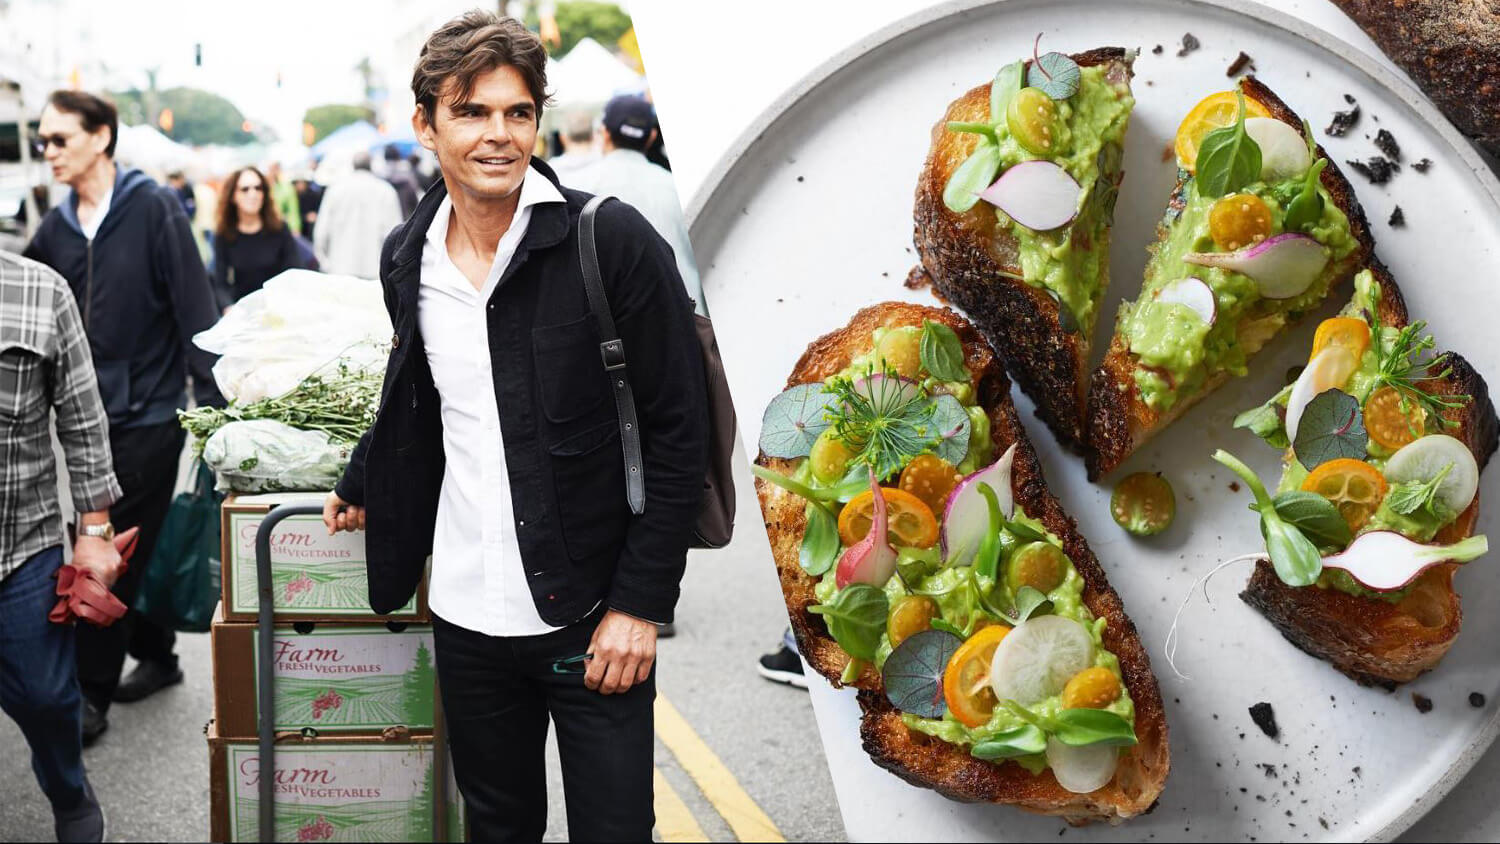 Celeb Chef Matthew Kenney's Vegan Plant Food and Wine Opens in NYC